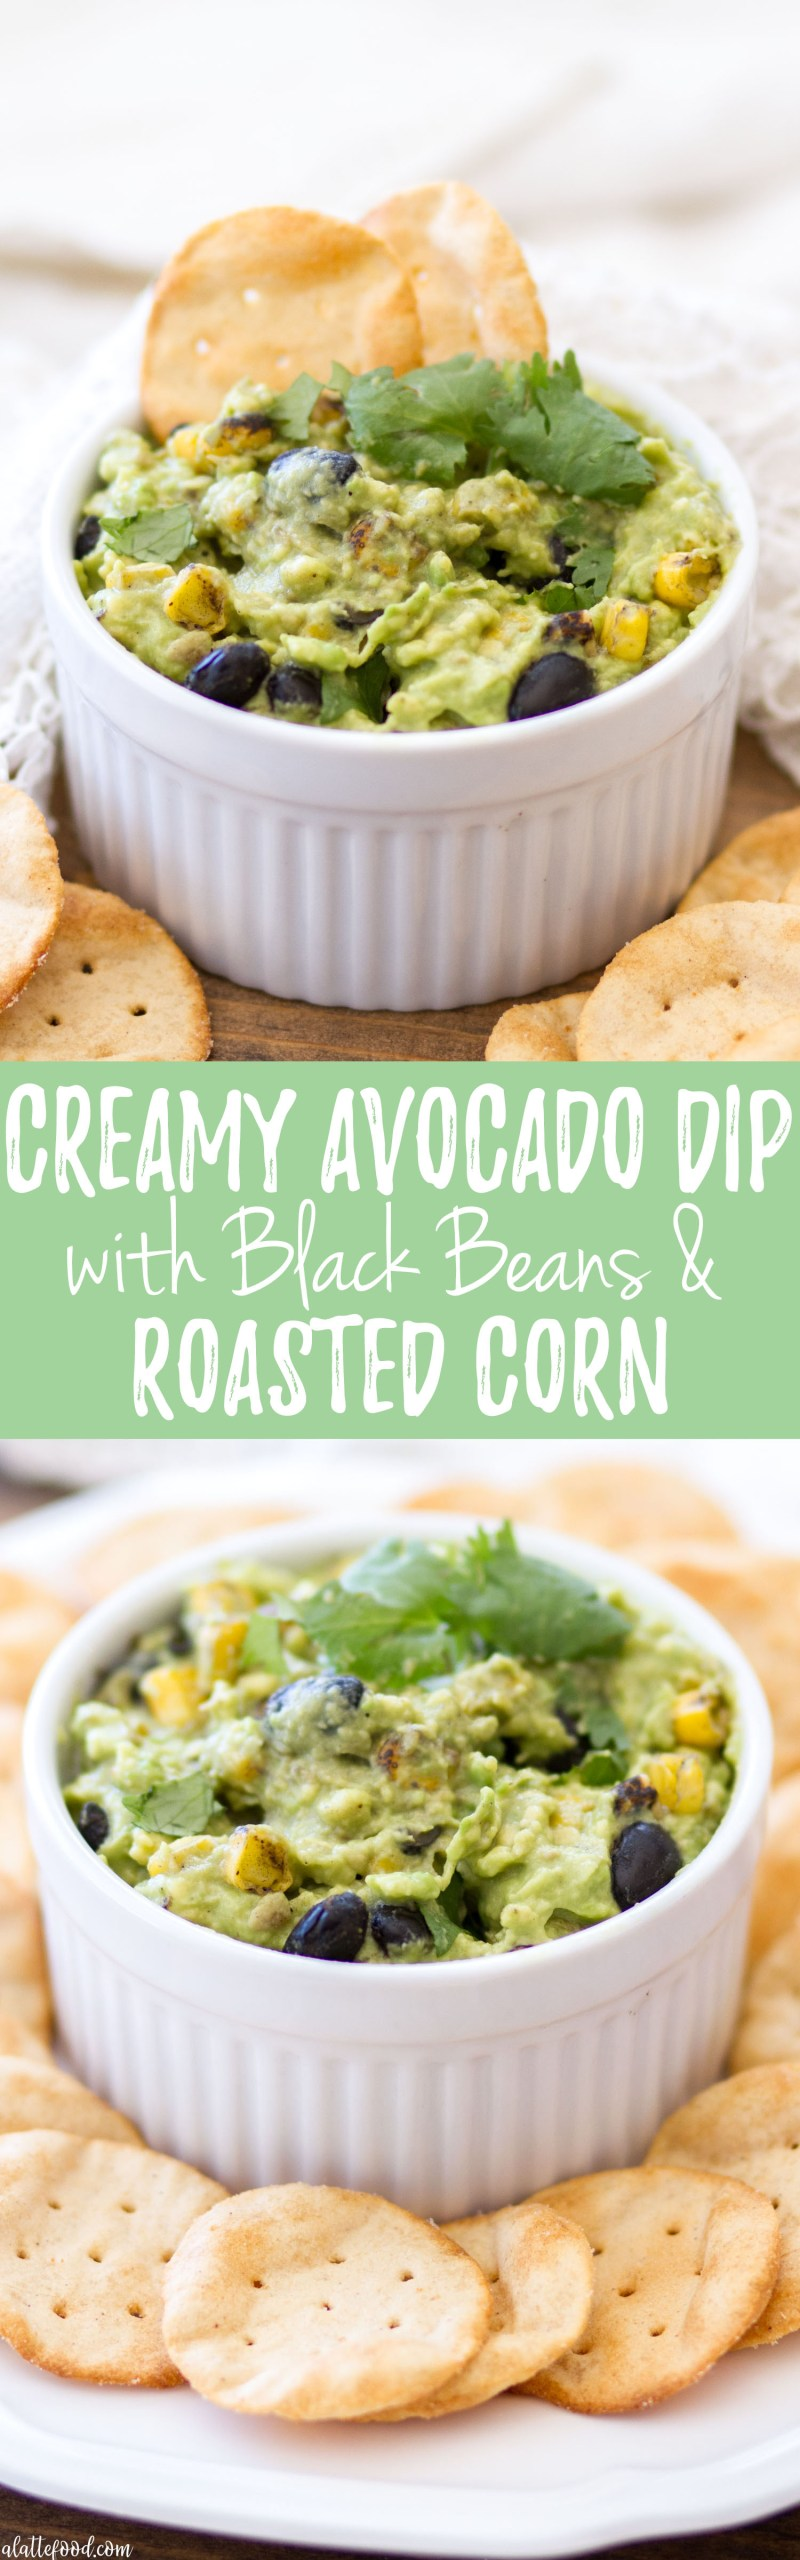 This creamy avocado dip is filled with fresh cilantro, black beans, and roasted corn for a simple dip recipe perfect for an easy appetizer or quick and easy snack!